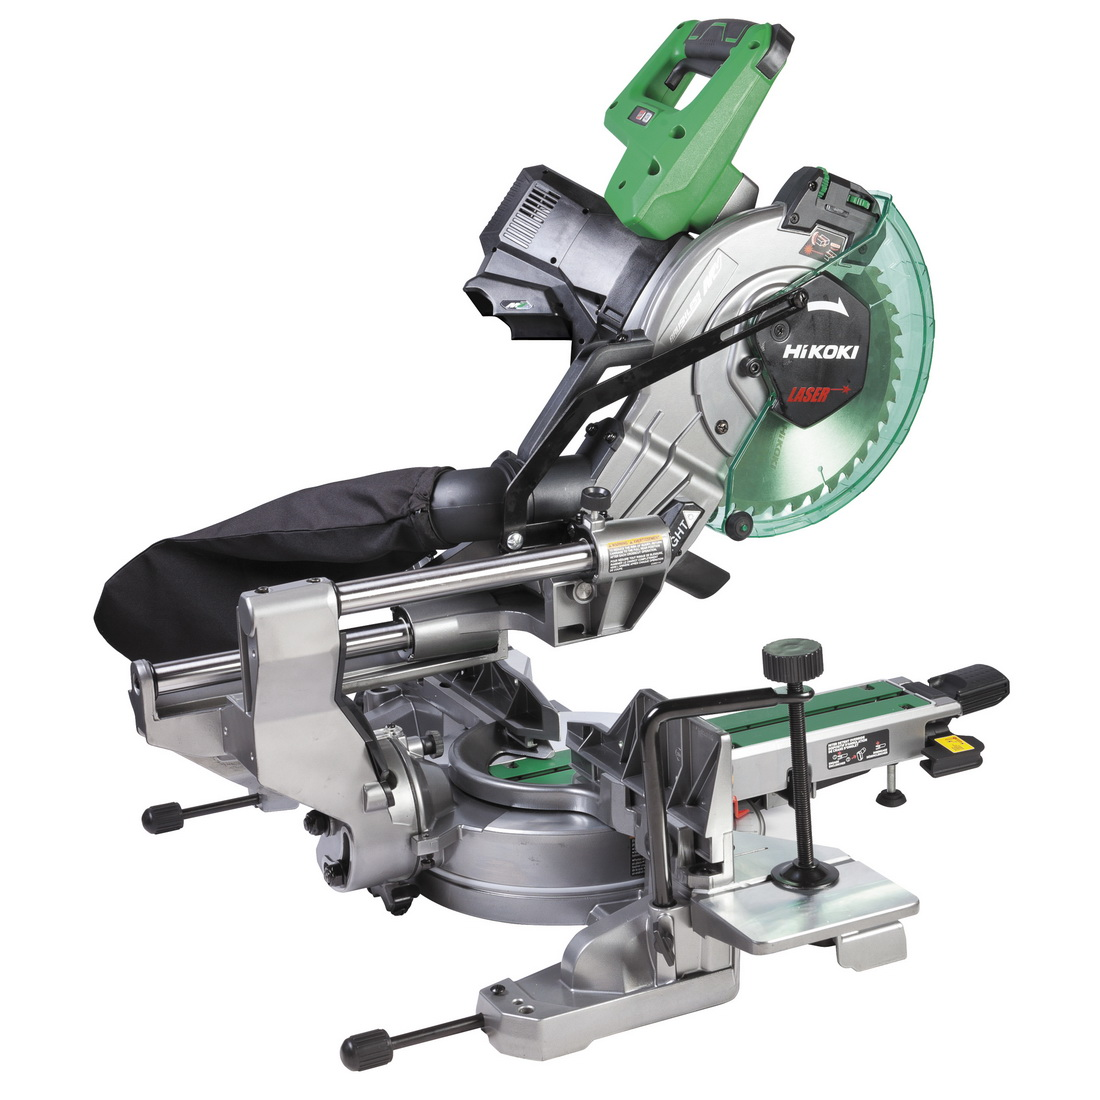 36V 255mm Li-Ion Cordless Brushless MultiVolt Compound Mitre Saw Skin